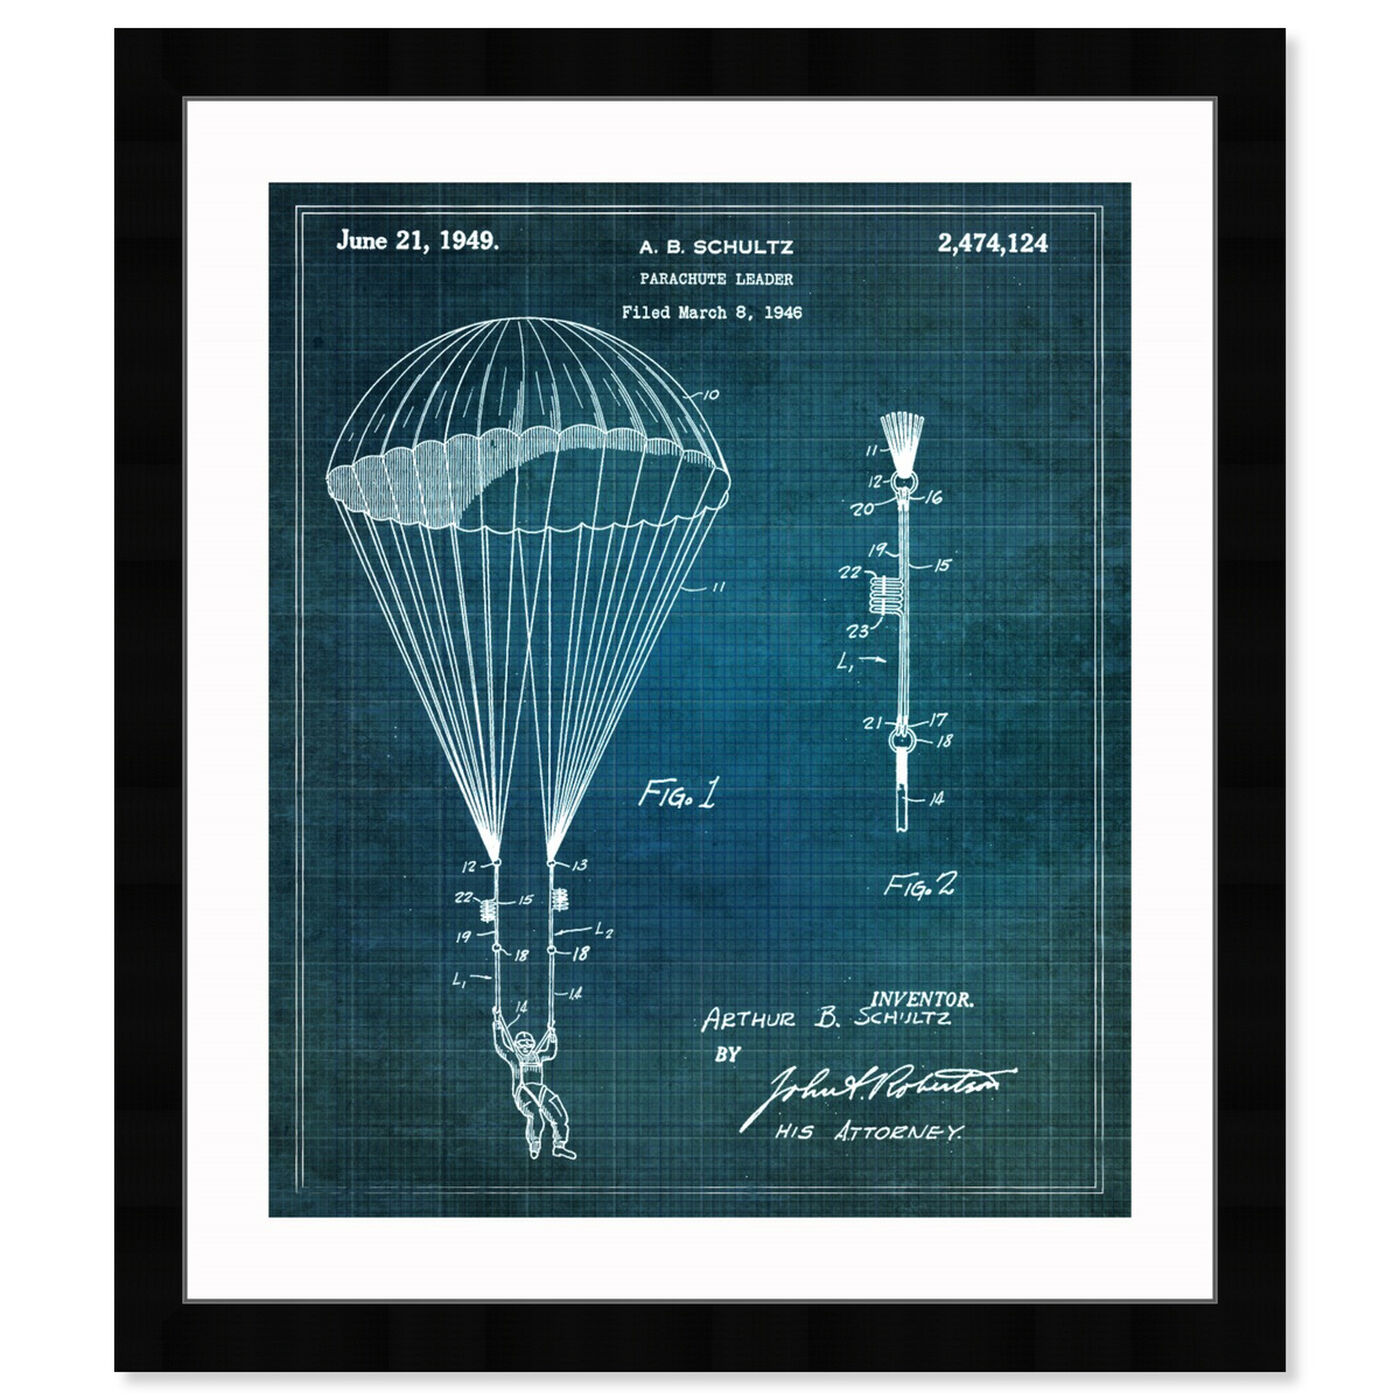 Front view of Parachute Leader 1949 featuring transportation and air transportation art.